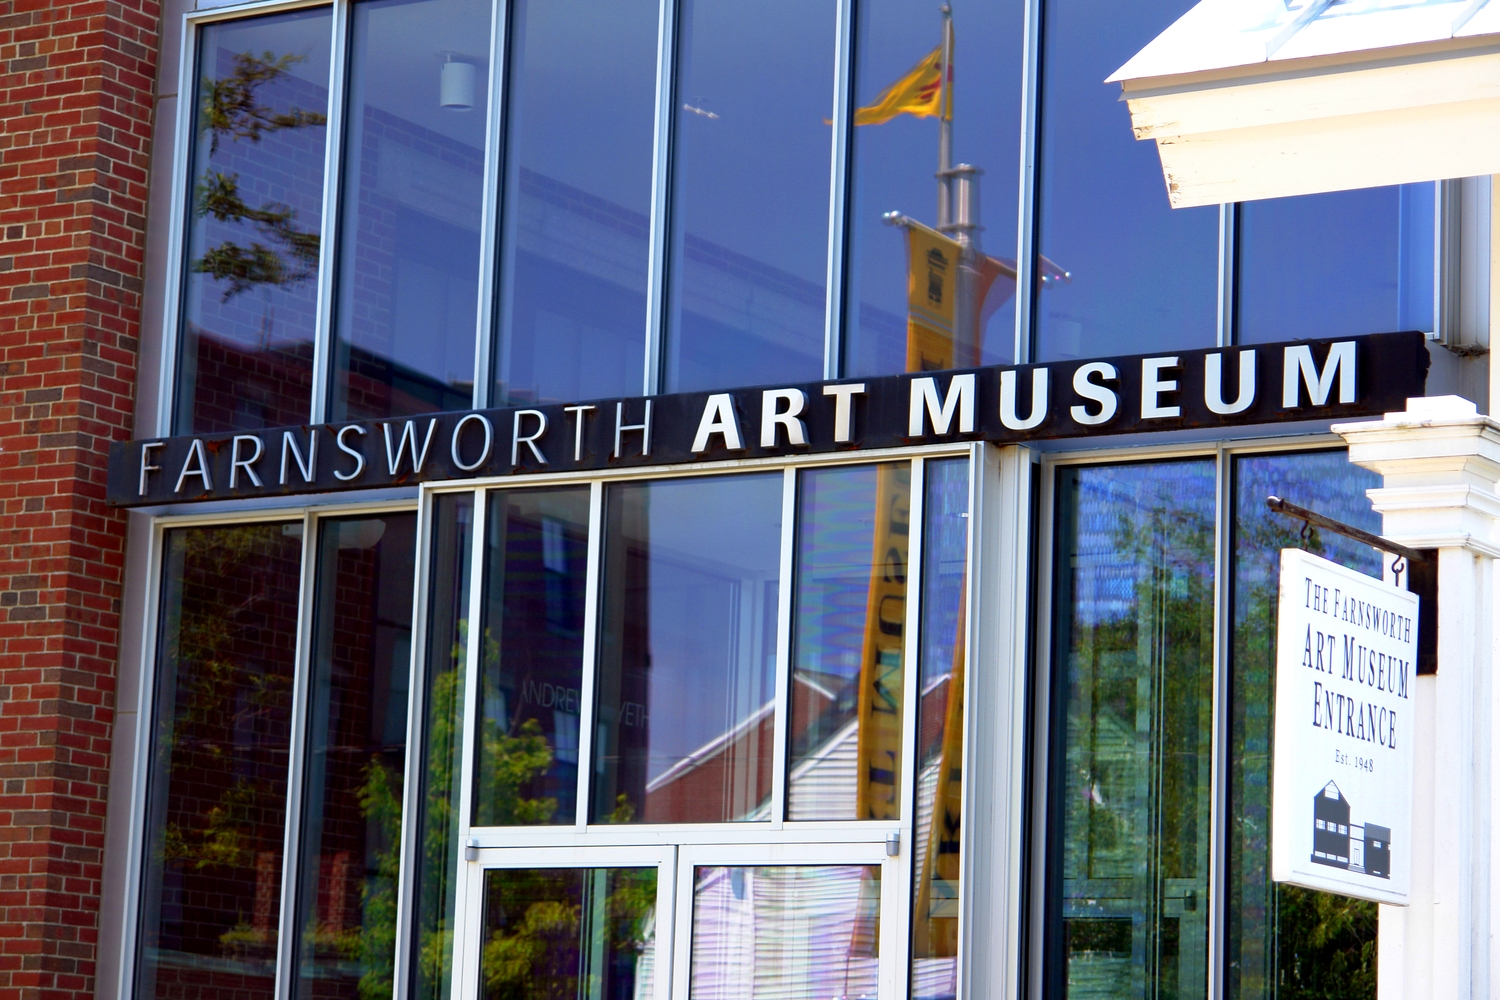 Farnsworth Art Museum